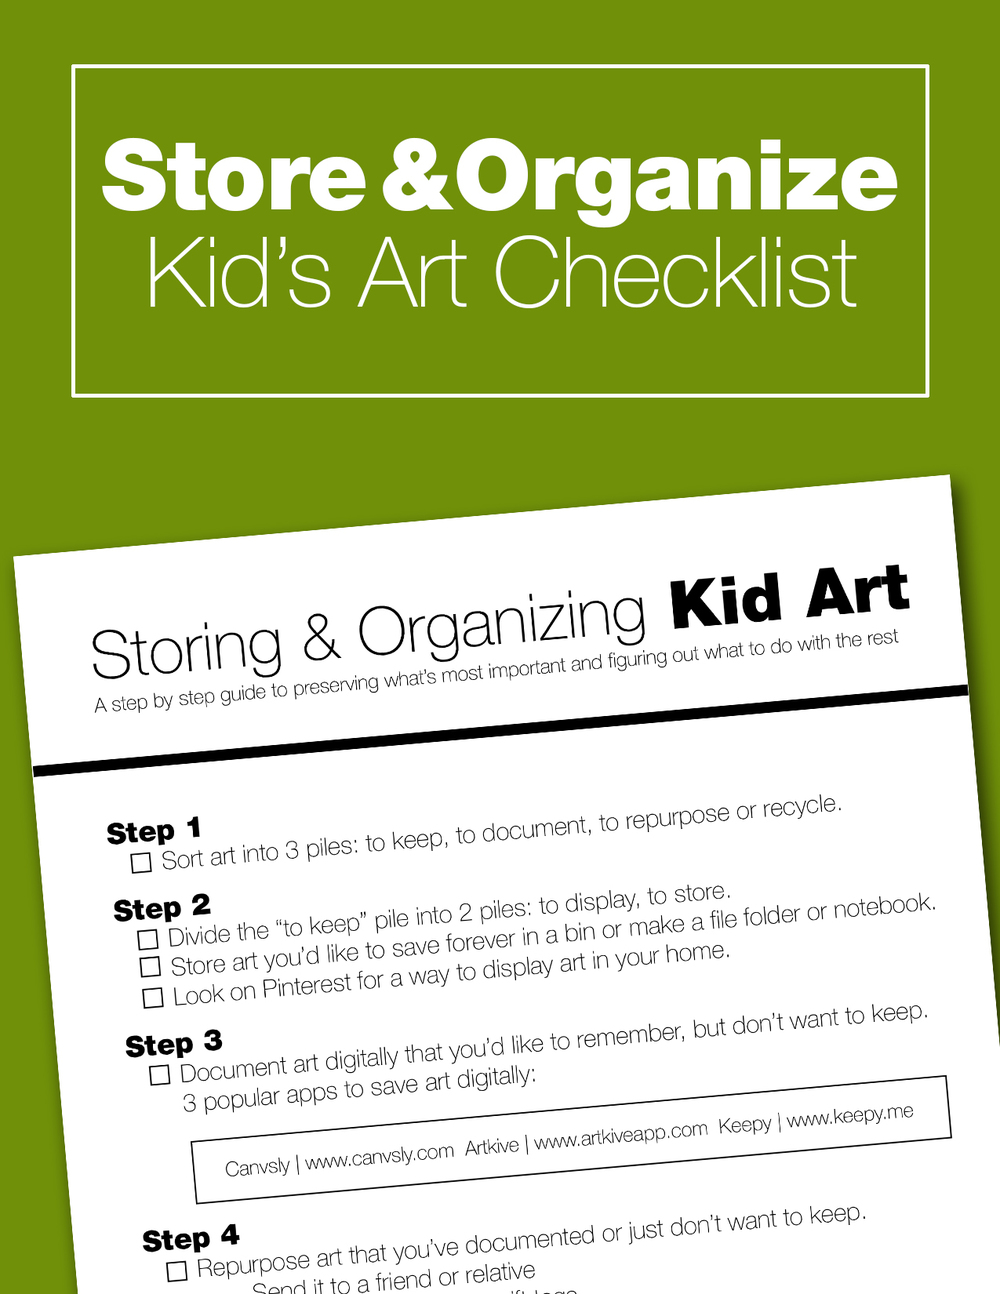 This checklist will take you step by step in sorting and storing your children's art projects. Includes a list of apps, and lots of great ideas for organizing and displaying all the art your little ones love to create!